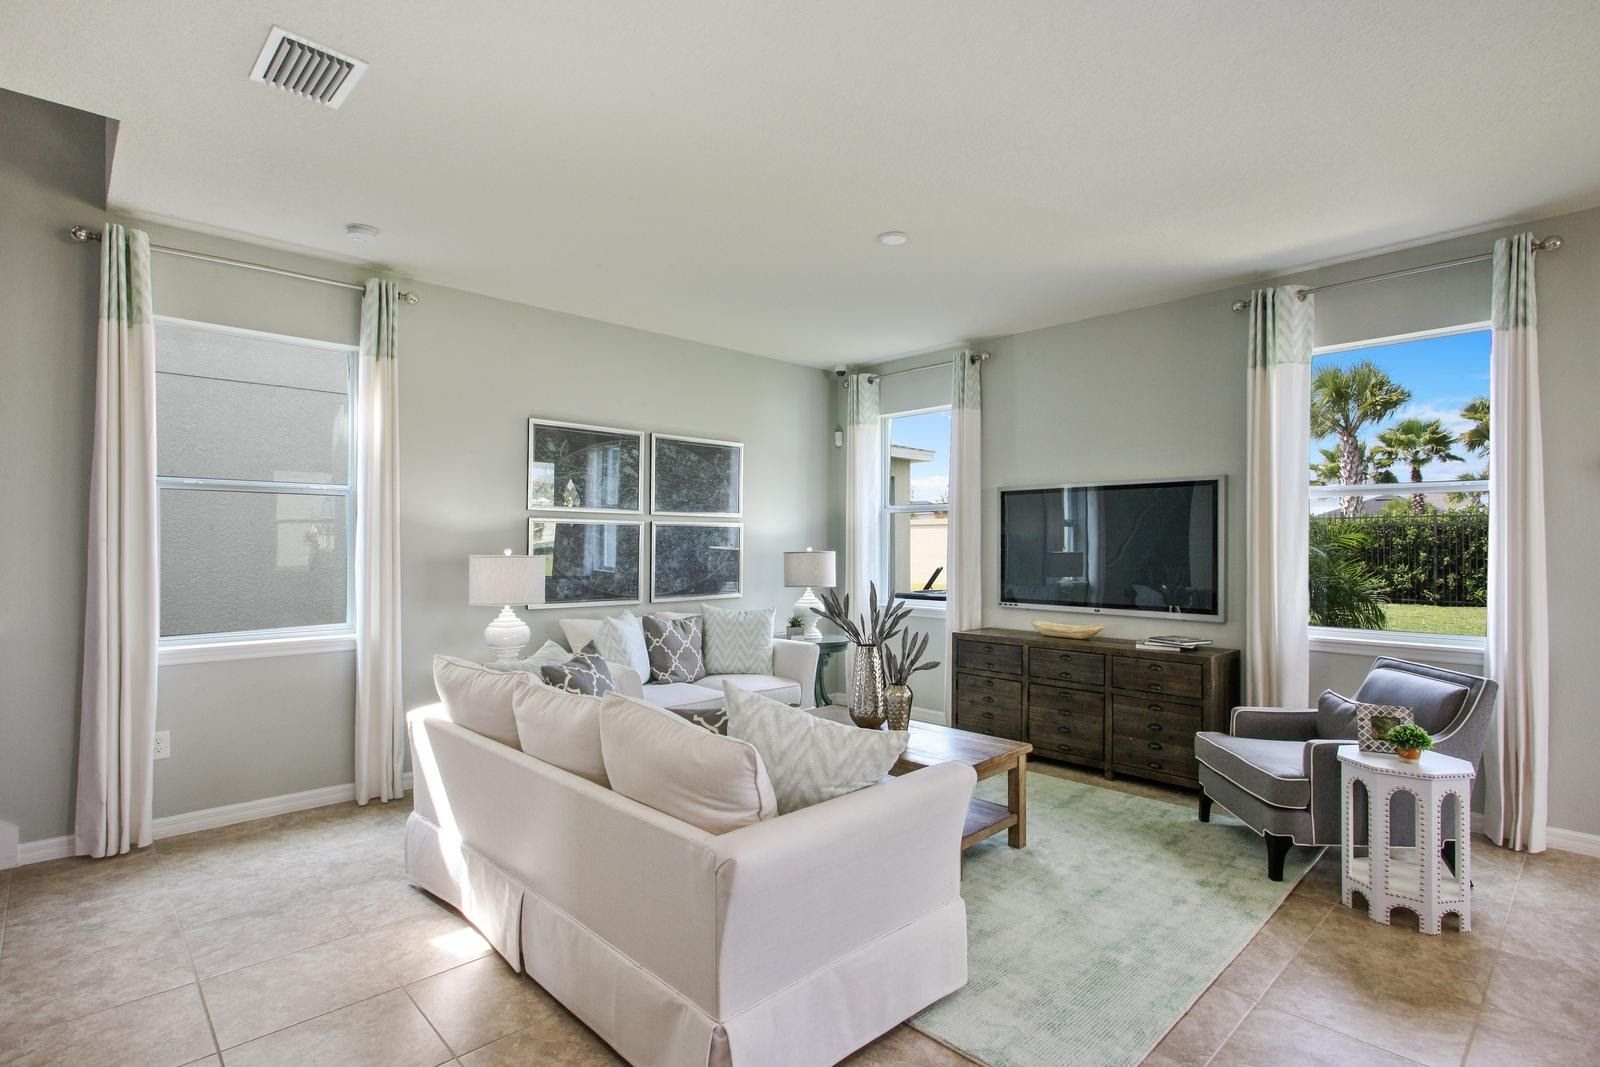 Photo of Doral in Clermont, FL 34714